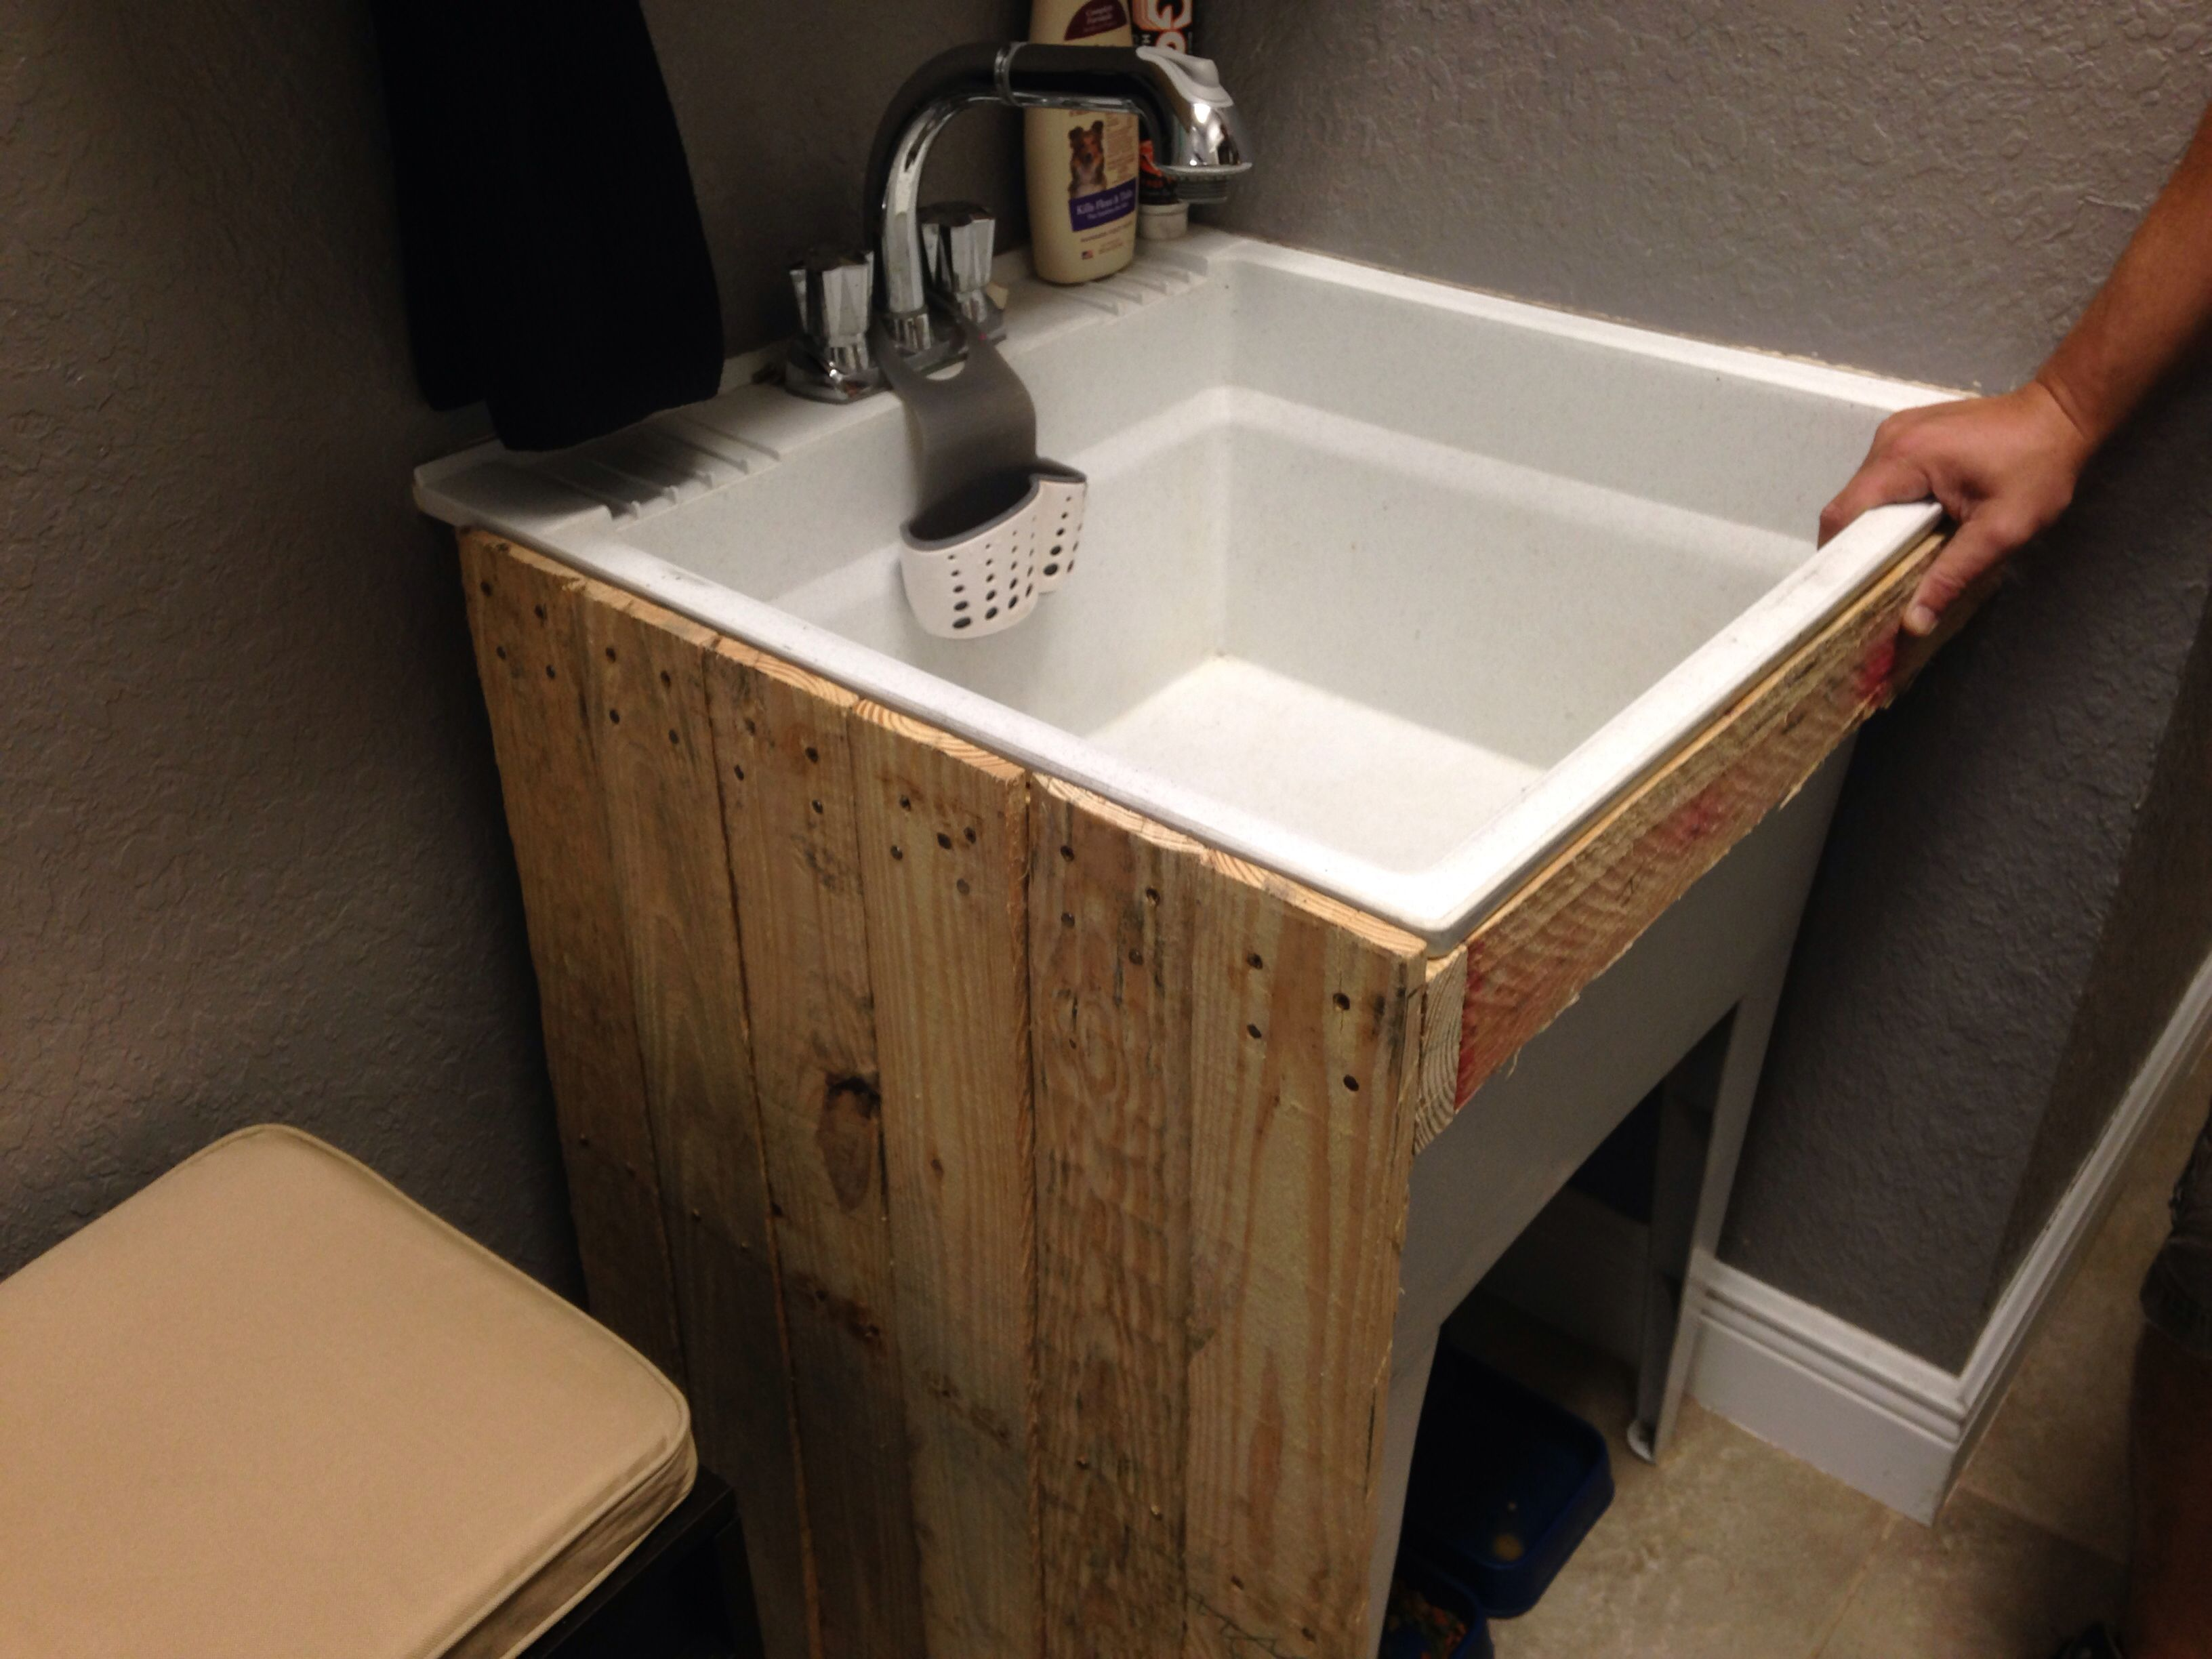 Lovely Laundry Room Utility Sink Ideas 16 With Additional New Home Gift